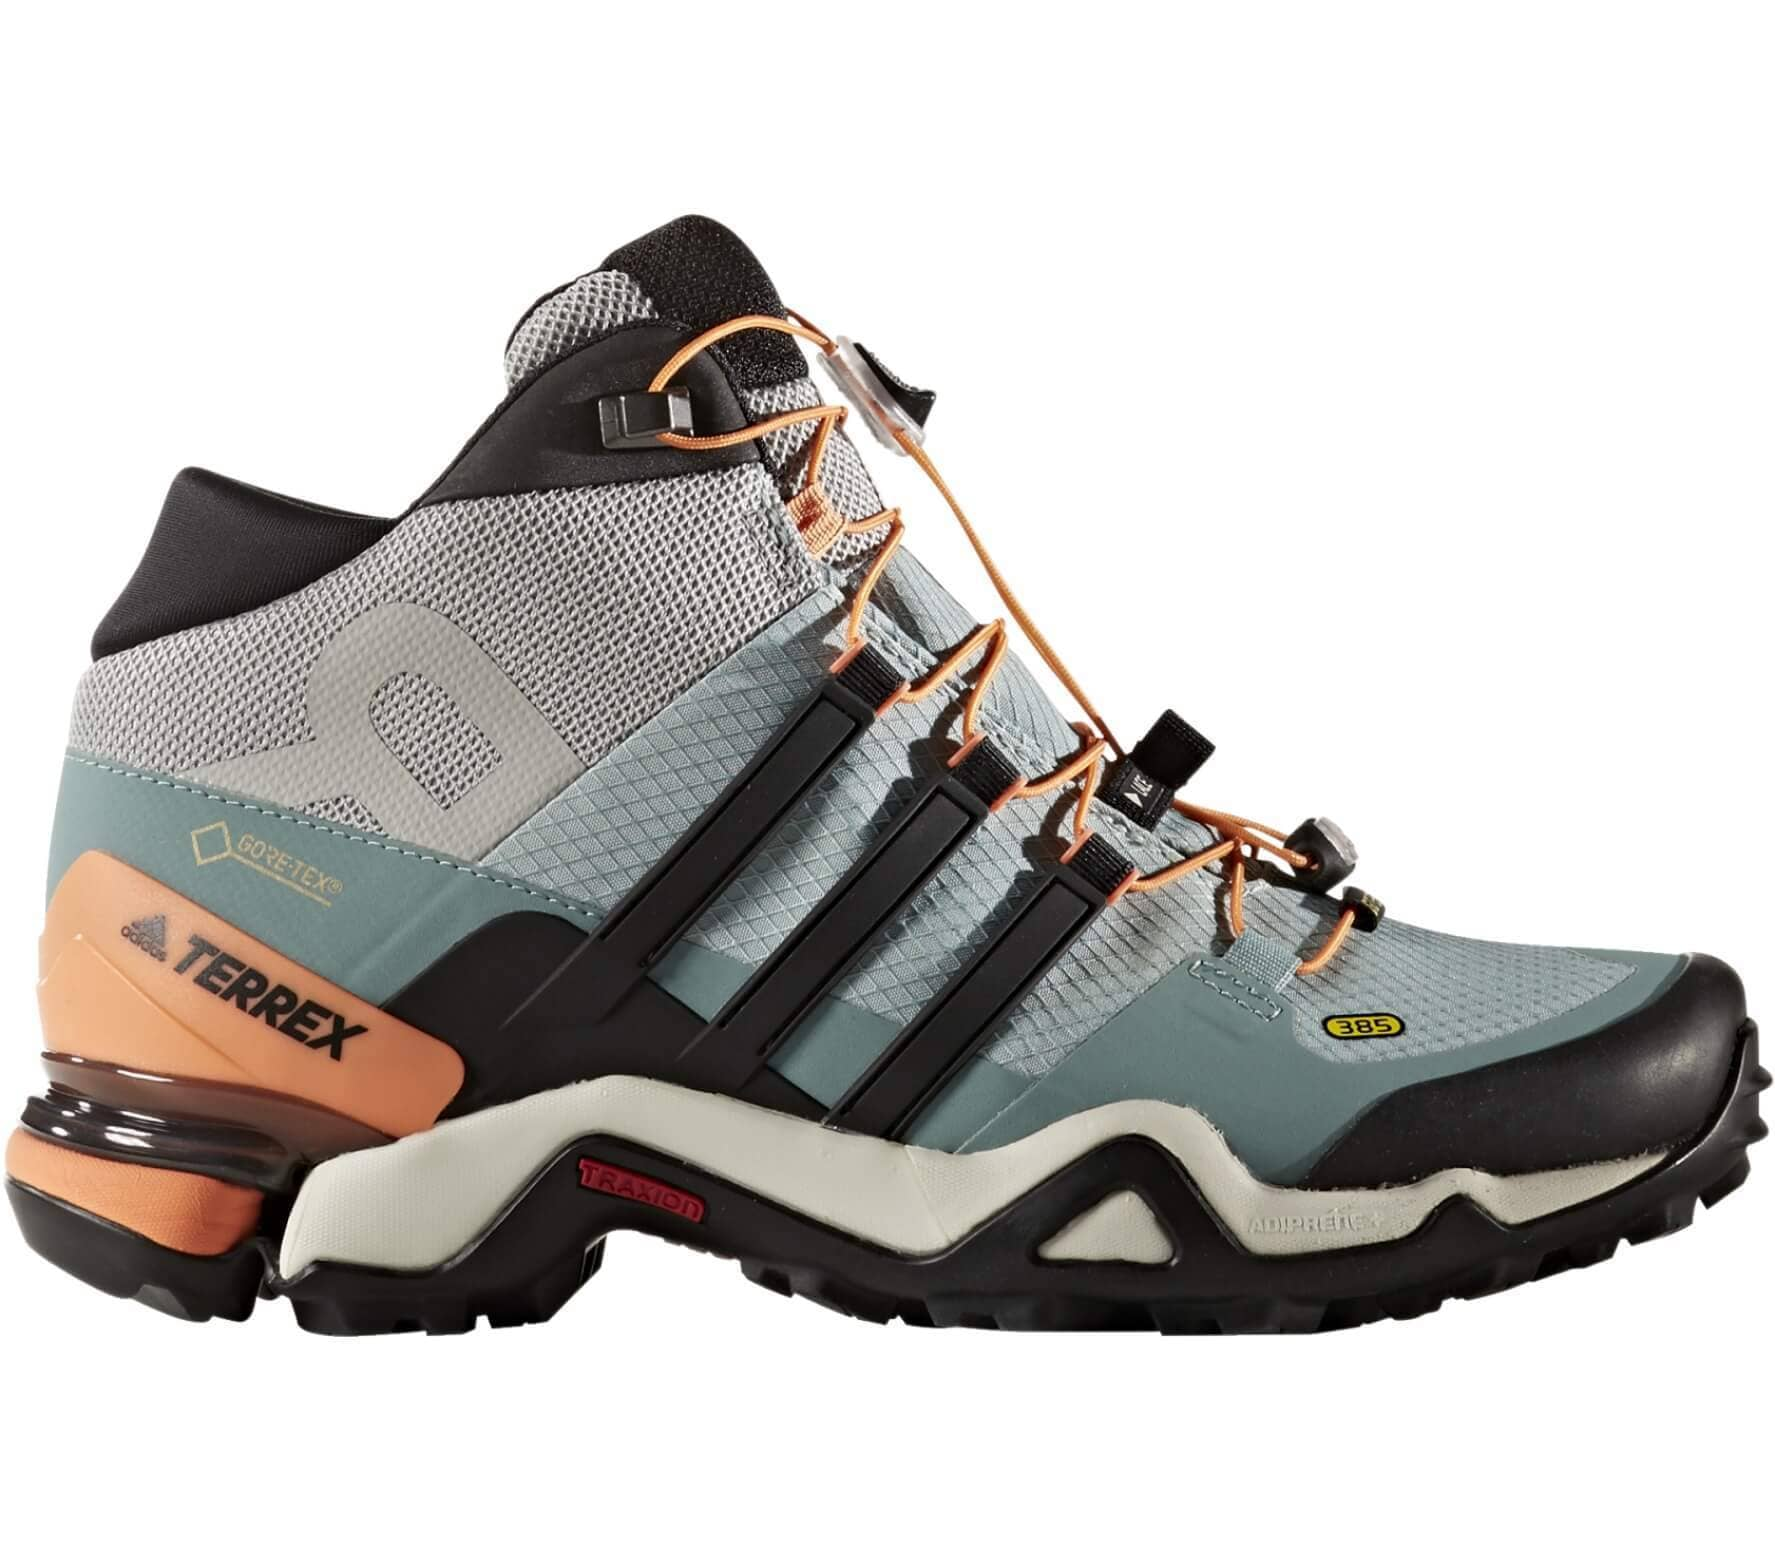 new arrival 000cf 67e6c Adidas - Terrex Fast R Mid GTX women s hiking shoes (light green black)